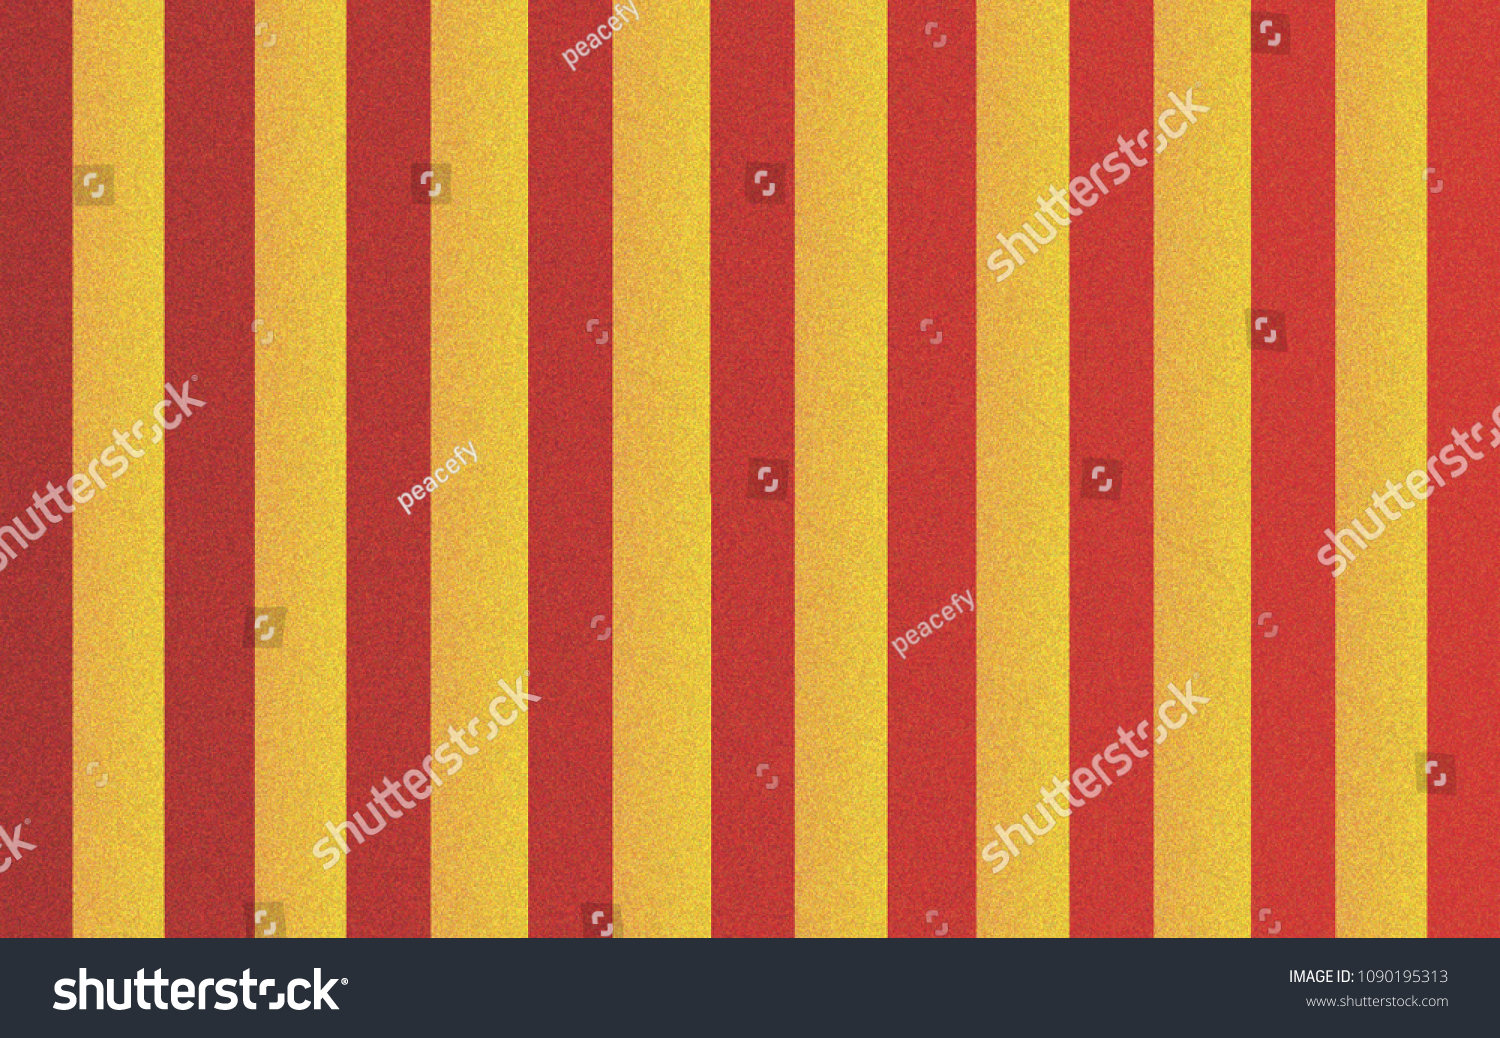 Red Yellow Vintage Circus Wallpaper Royalty Free Stock Image